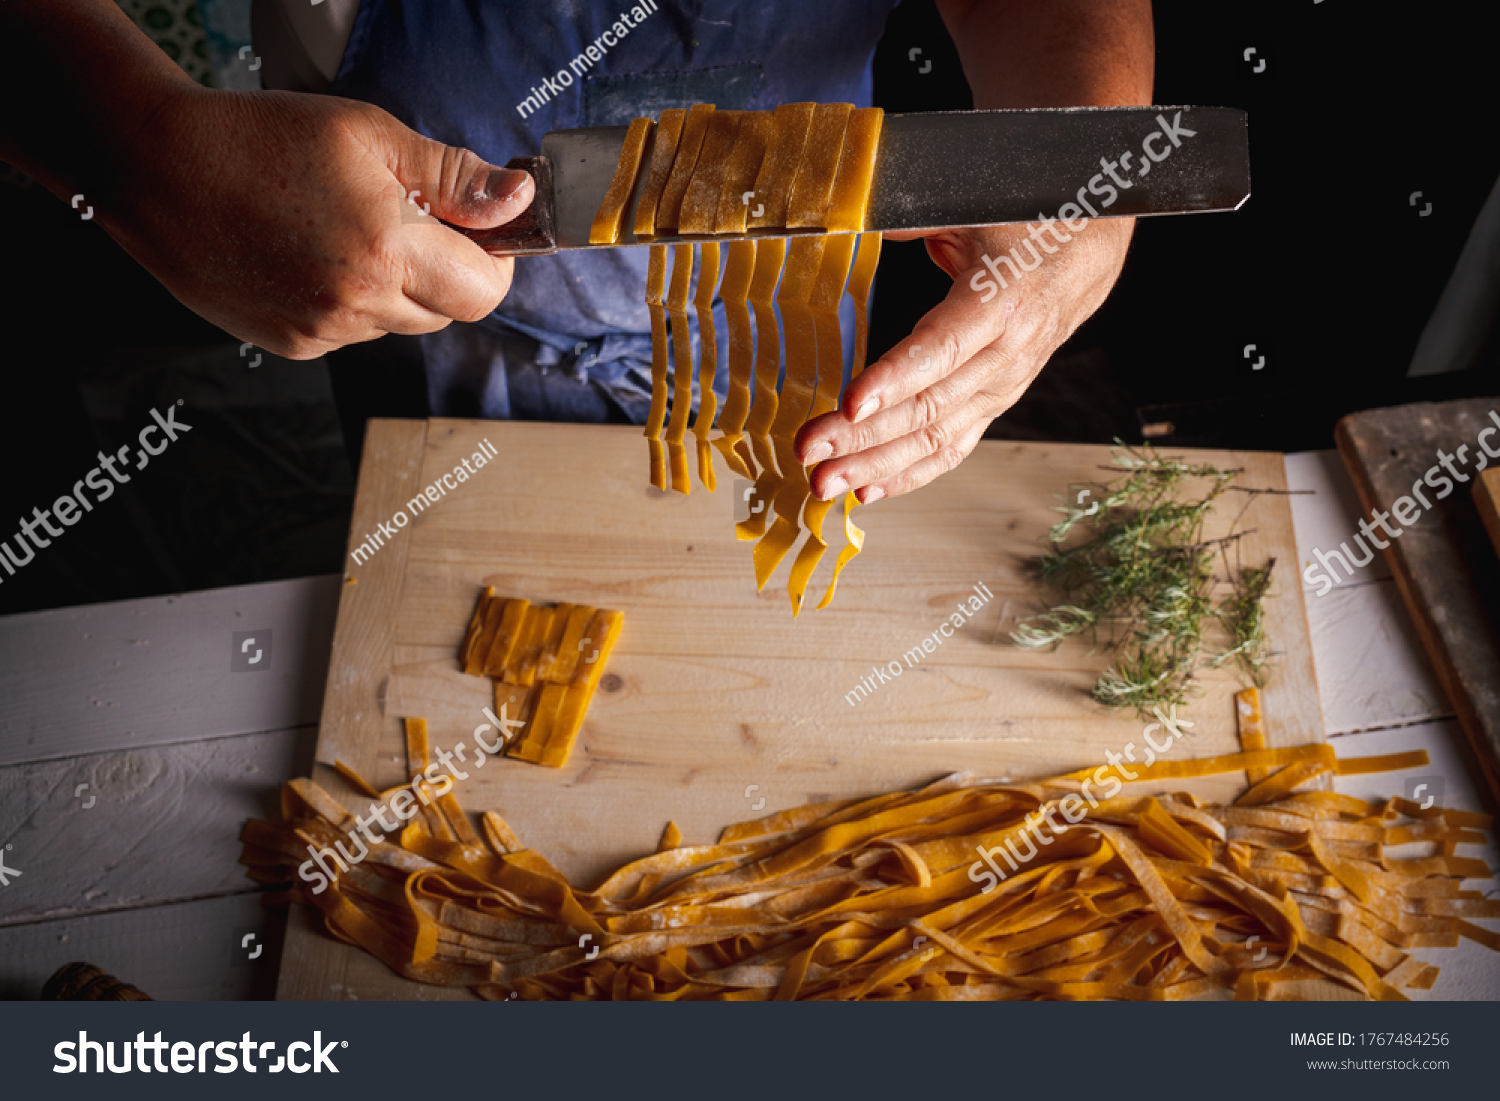 https://lnx.mirkone.it/wp-content/uploads/2016/01/stock-photo-the-homemade-pasta-making-process-the-chef-makes-traditional-italian-fresh-pasta-by-hand-1767484256.jpg